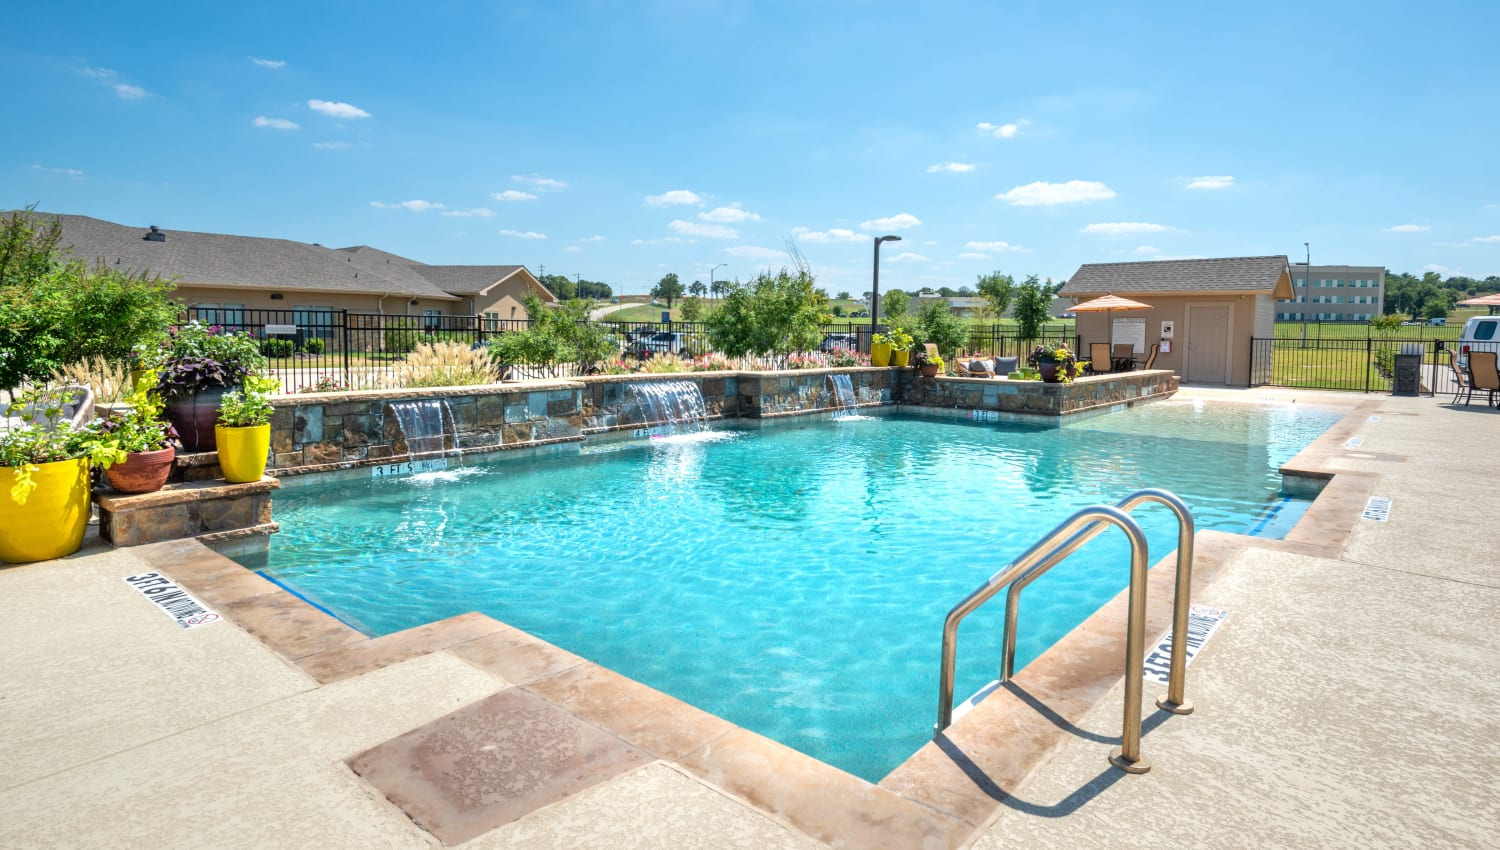 Inviting swimming pool on a gorgeous day at Olympus Willow Park in Willow Park, Texas